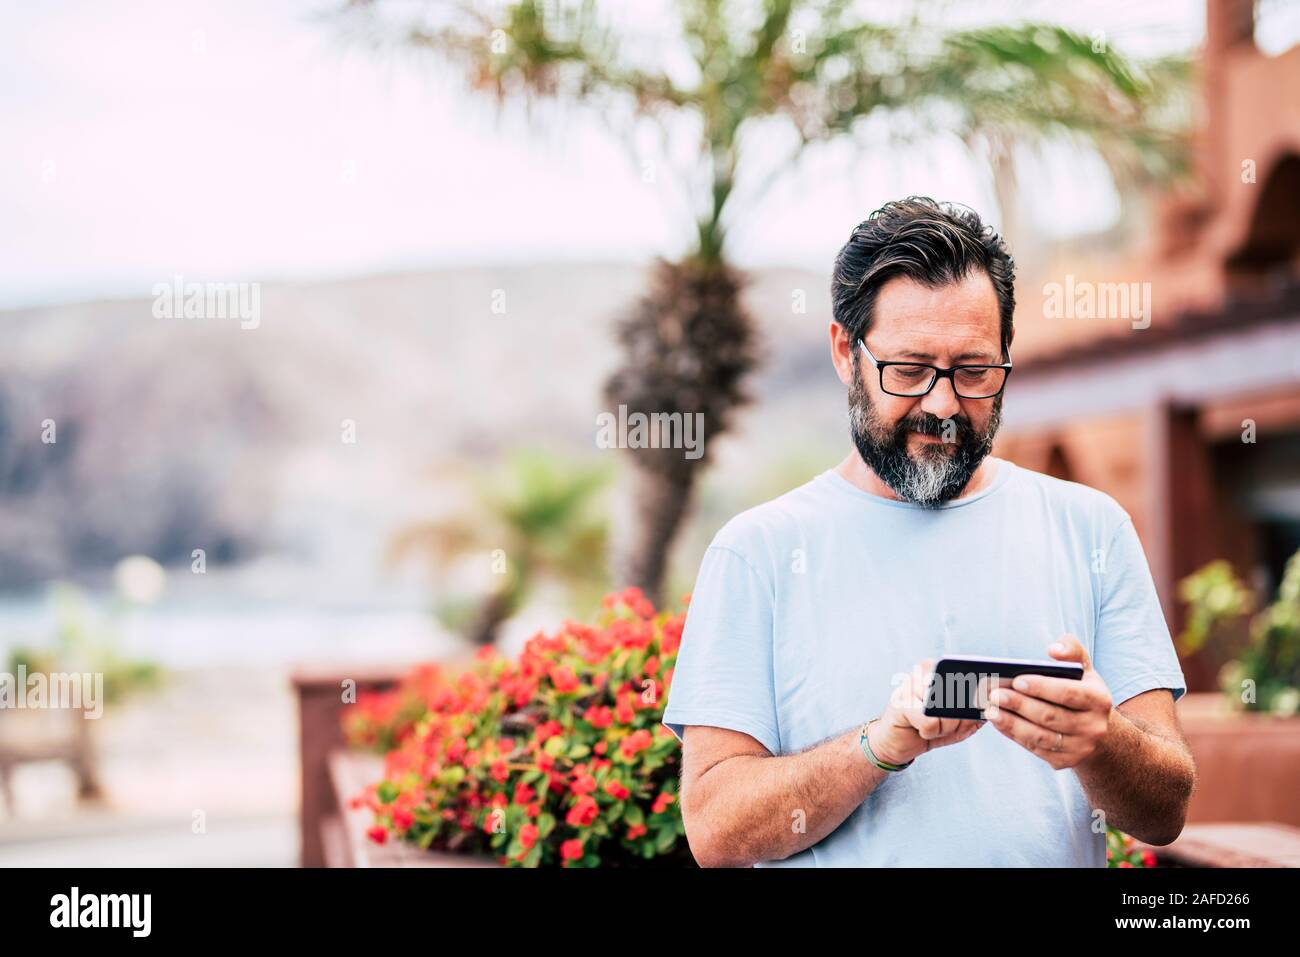 Man type on a modern cellular phone device in outdoor leisure activity with technology - portrait of aged adult with defocused background Stock Photo